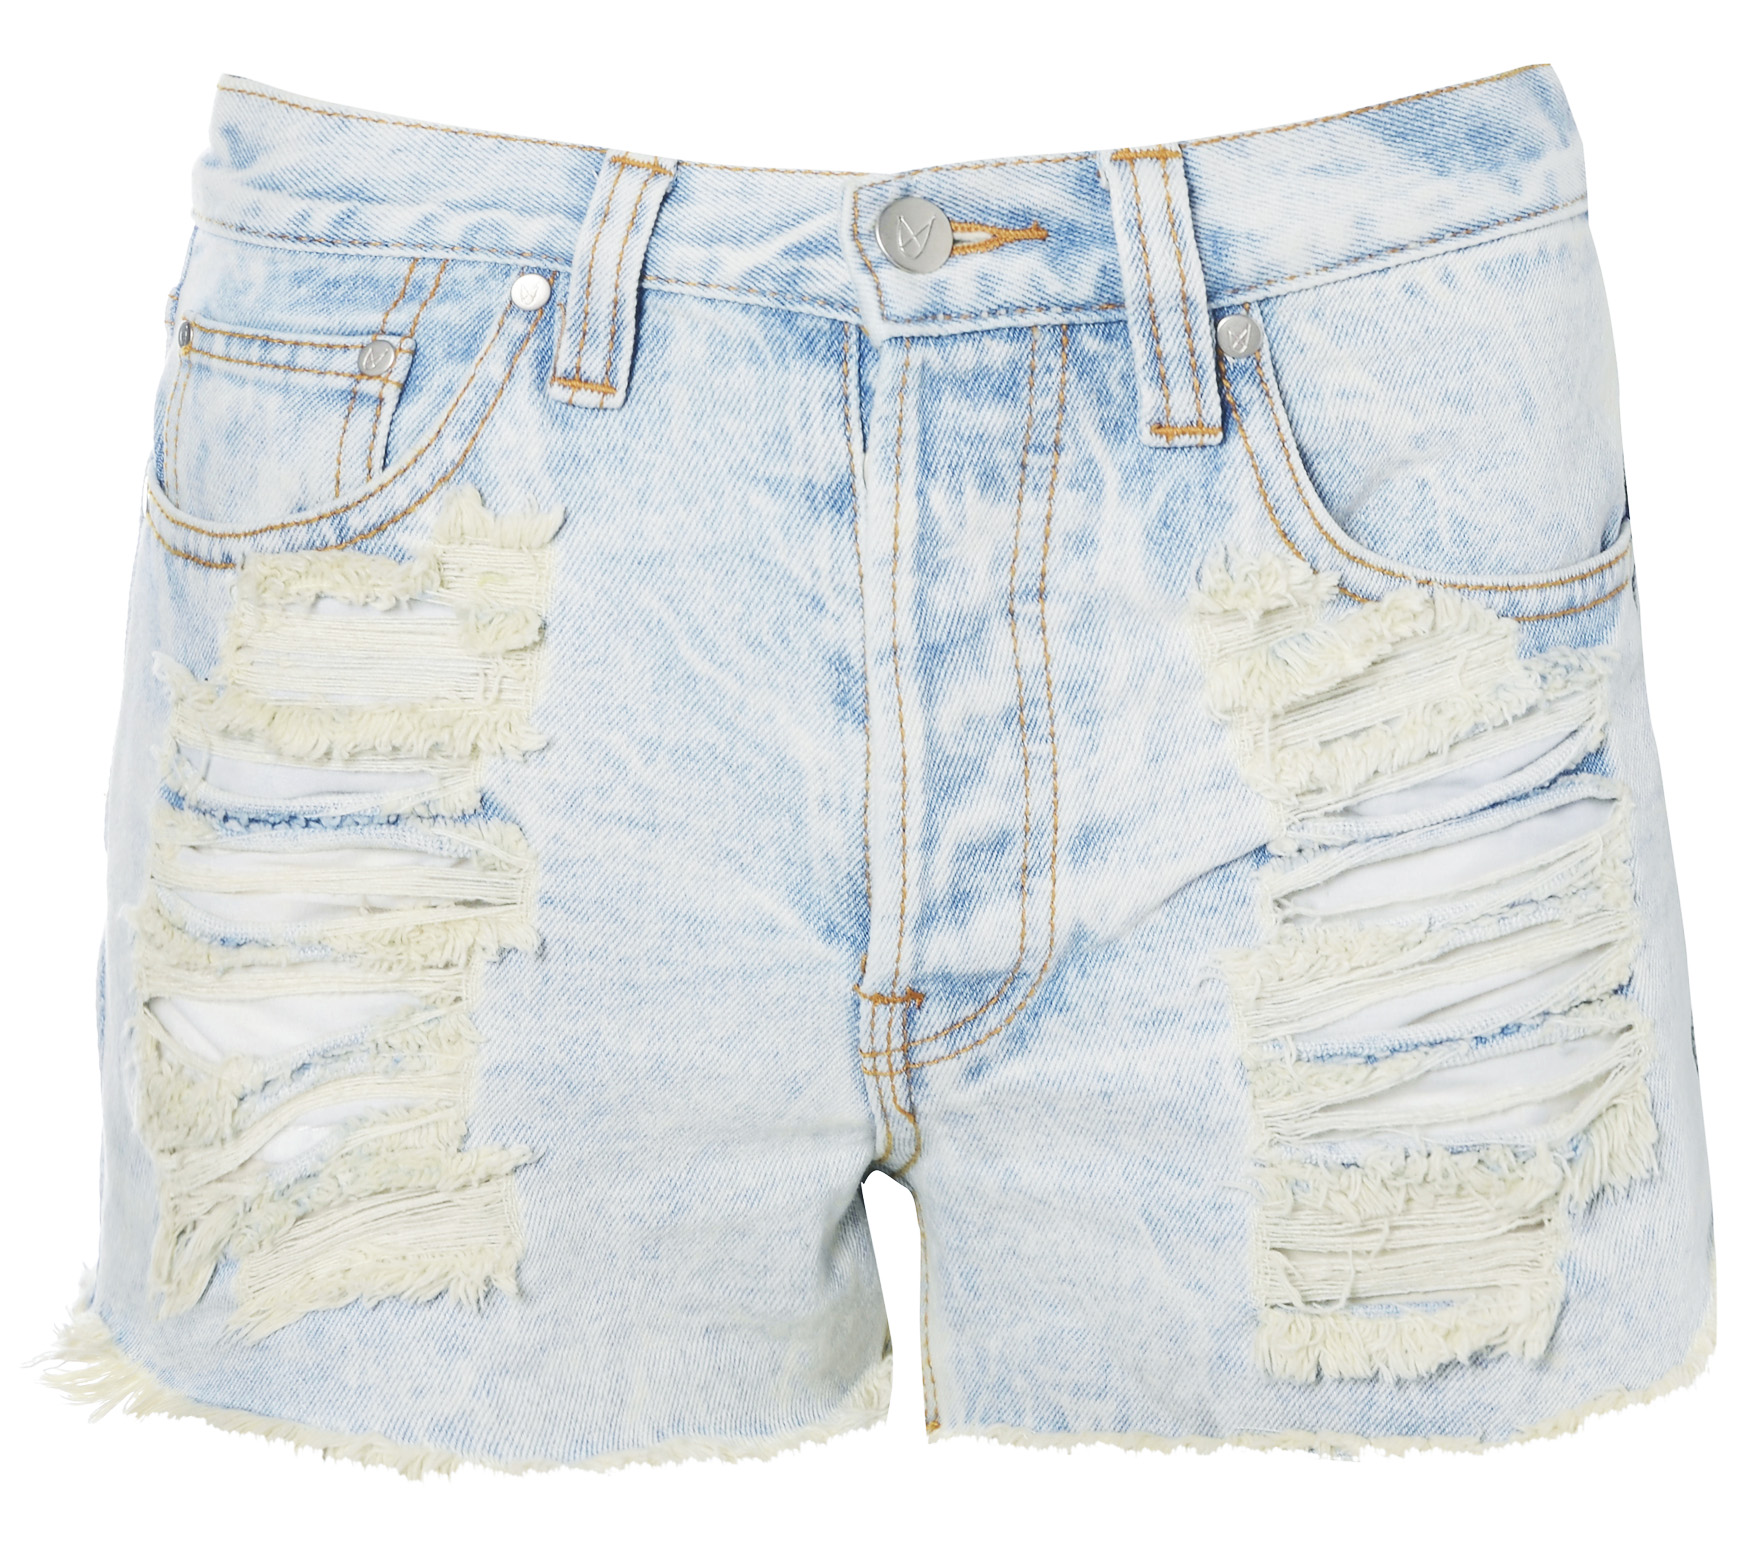 NEW WOMENS MINK PINK BLUE ACID BLEACH WASH DISTRESSED DENIM LADIES SHORTS Enlarged Preview